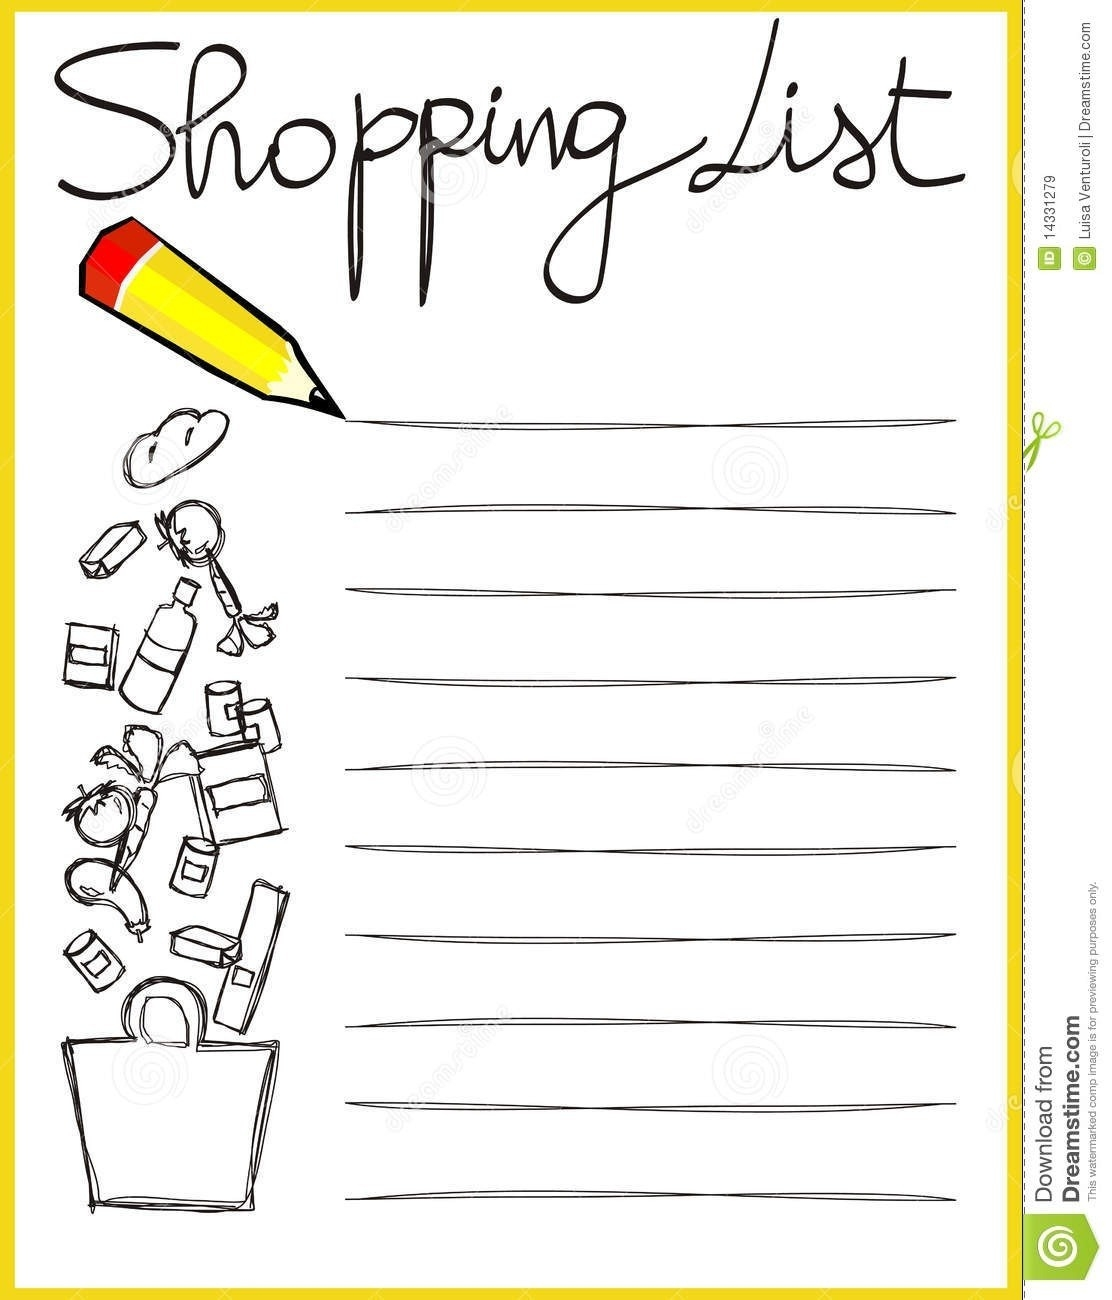 Shopping List Clipart Black And White | World Of Example for Shopping List Clipart Black And White 21671